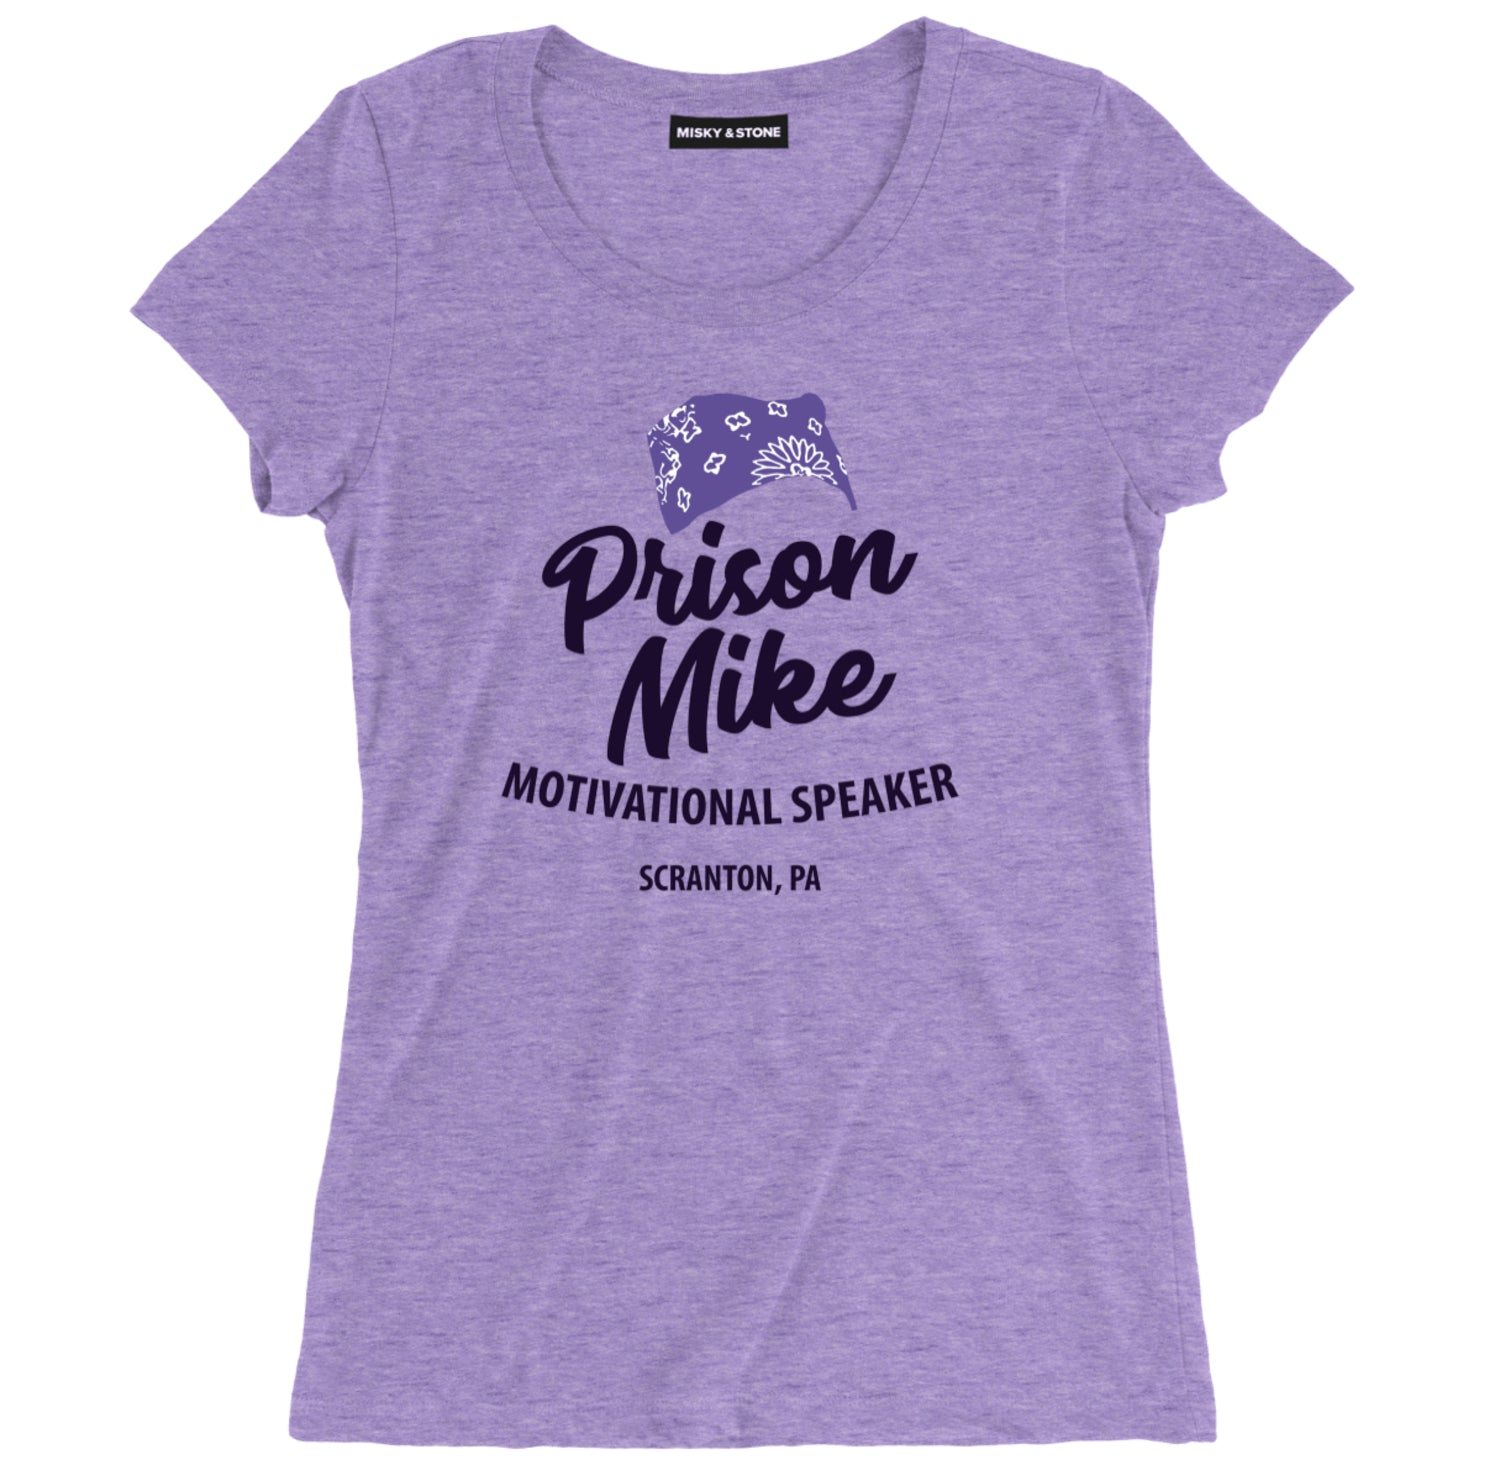 Prison Mike Womens Soft Tee Shirt